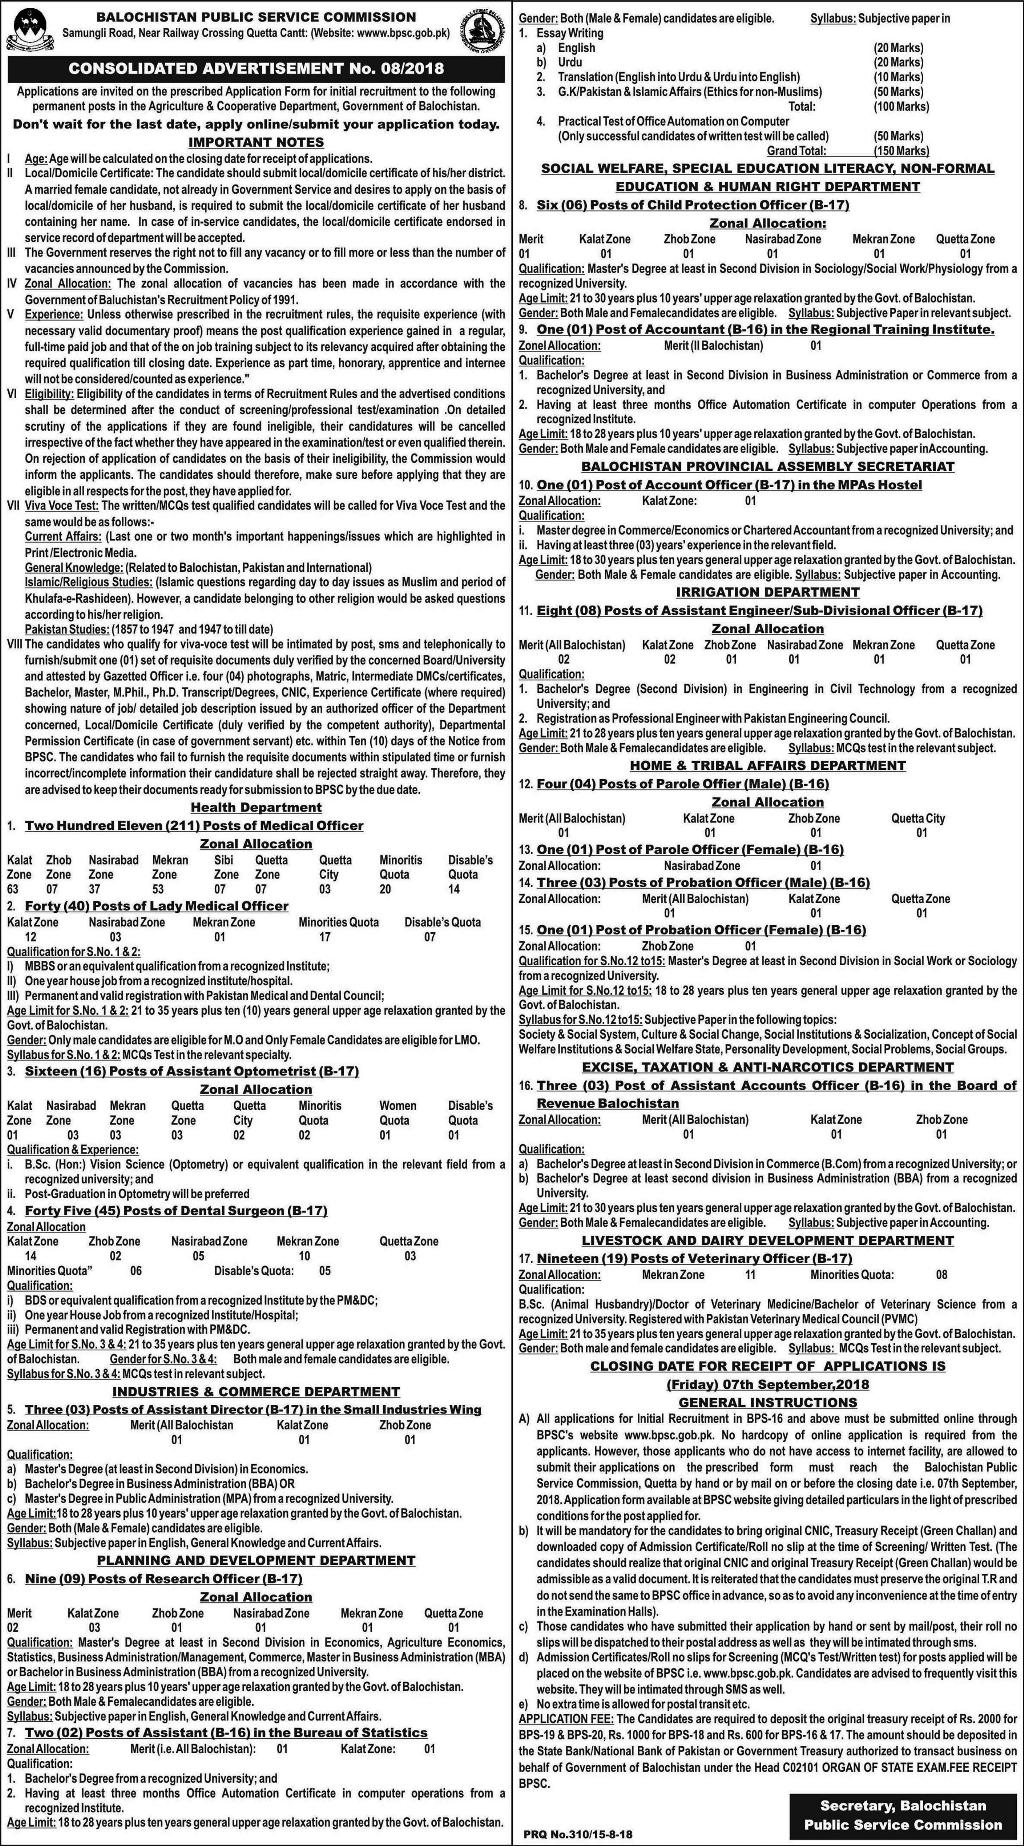 BPSC Jobs 2018 (8/2018): 373+ Posts in Multiple Departments